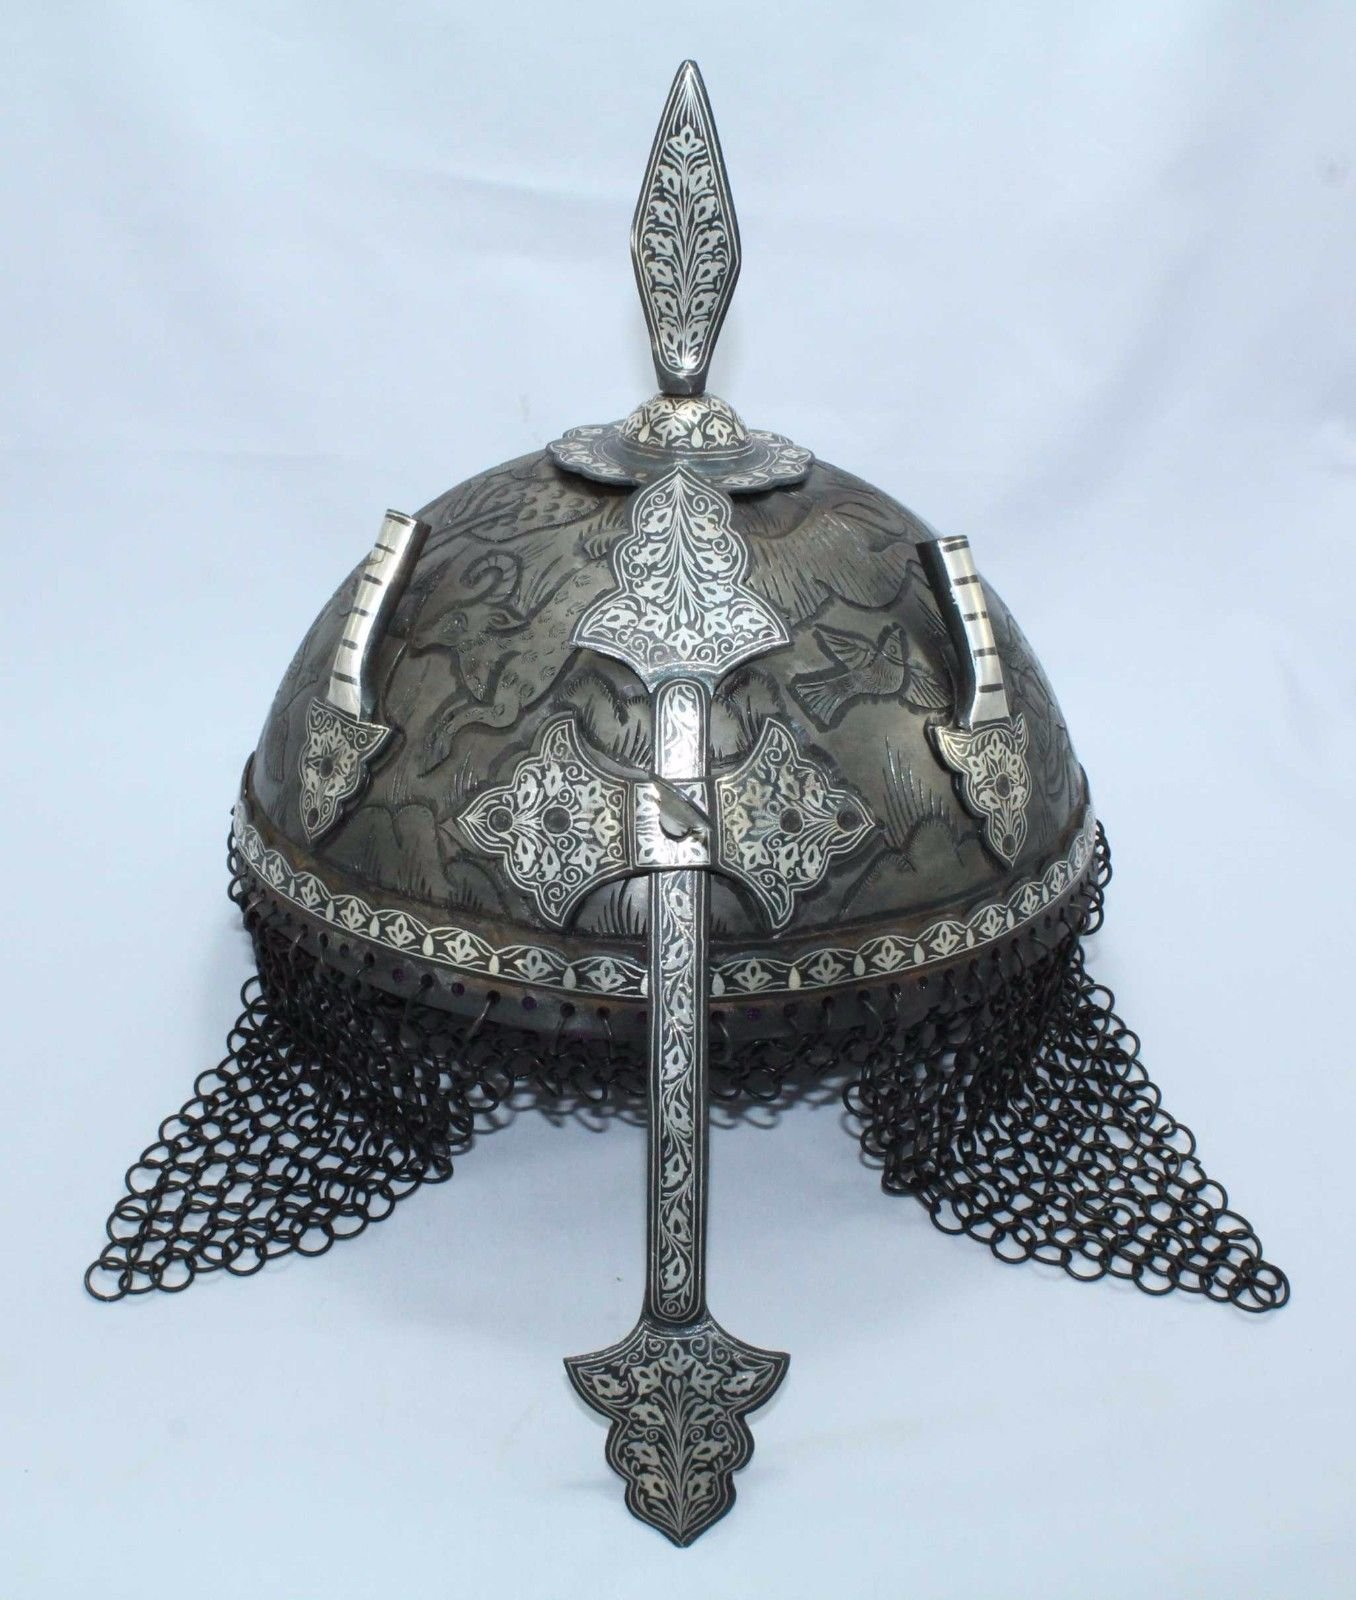 Rajasthan Gems Islamic Mughal Rajput Knight Engraved Vintage Steel Armour Shield Helmet/Silver Wire Handwork Ancient Medieval Antique Crusader Chainmail Collectible-Home Decor